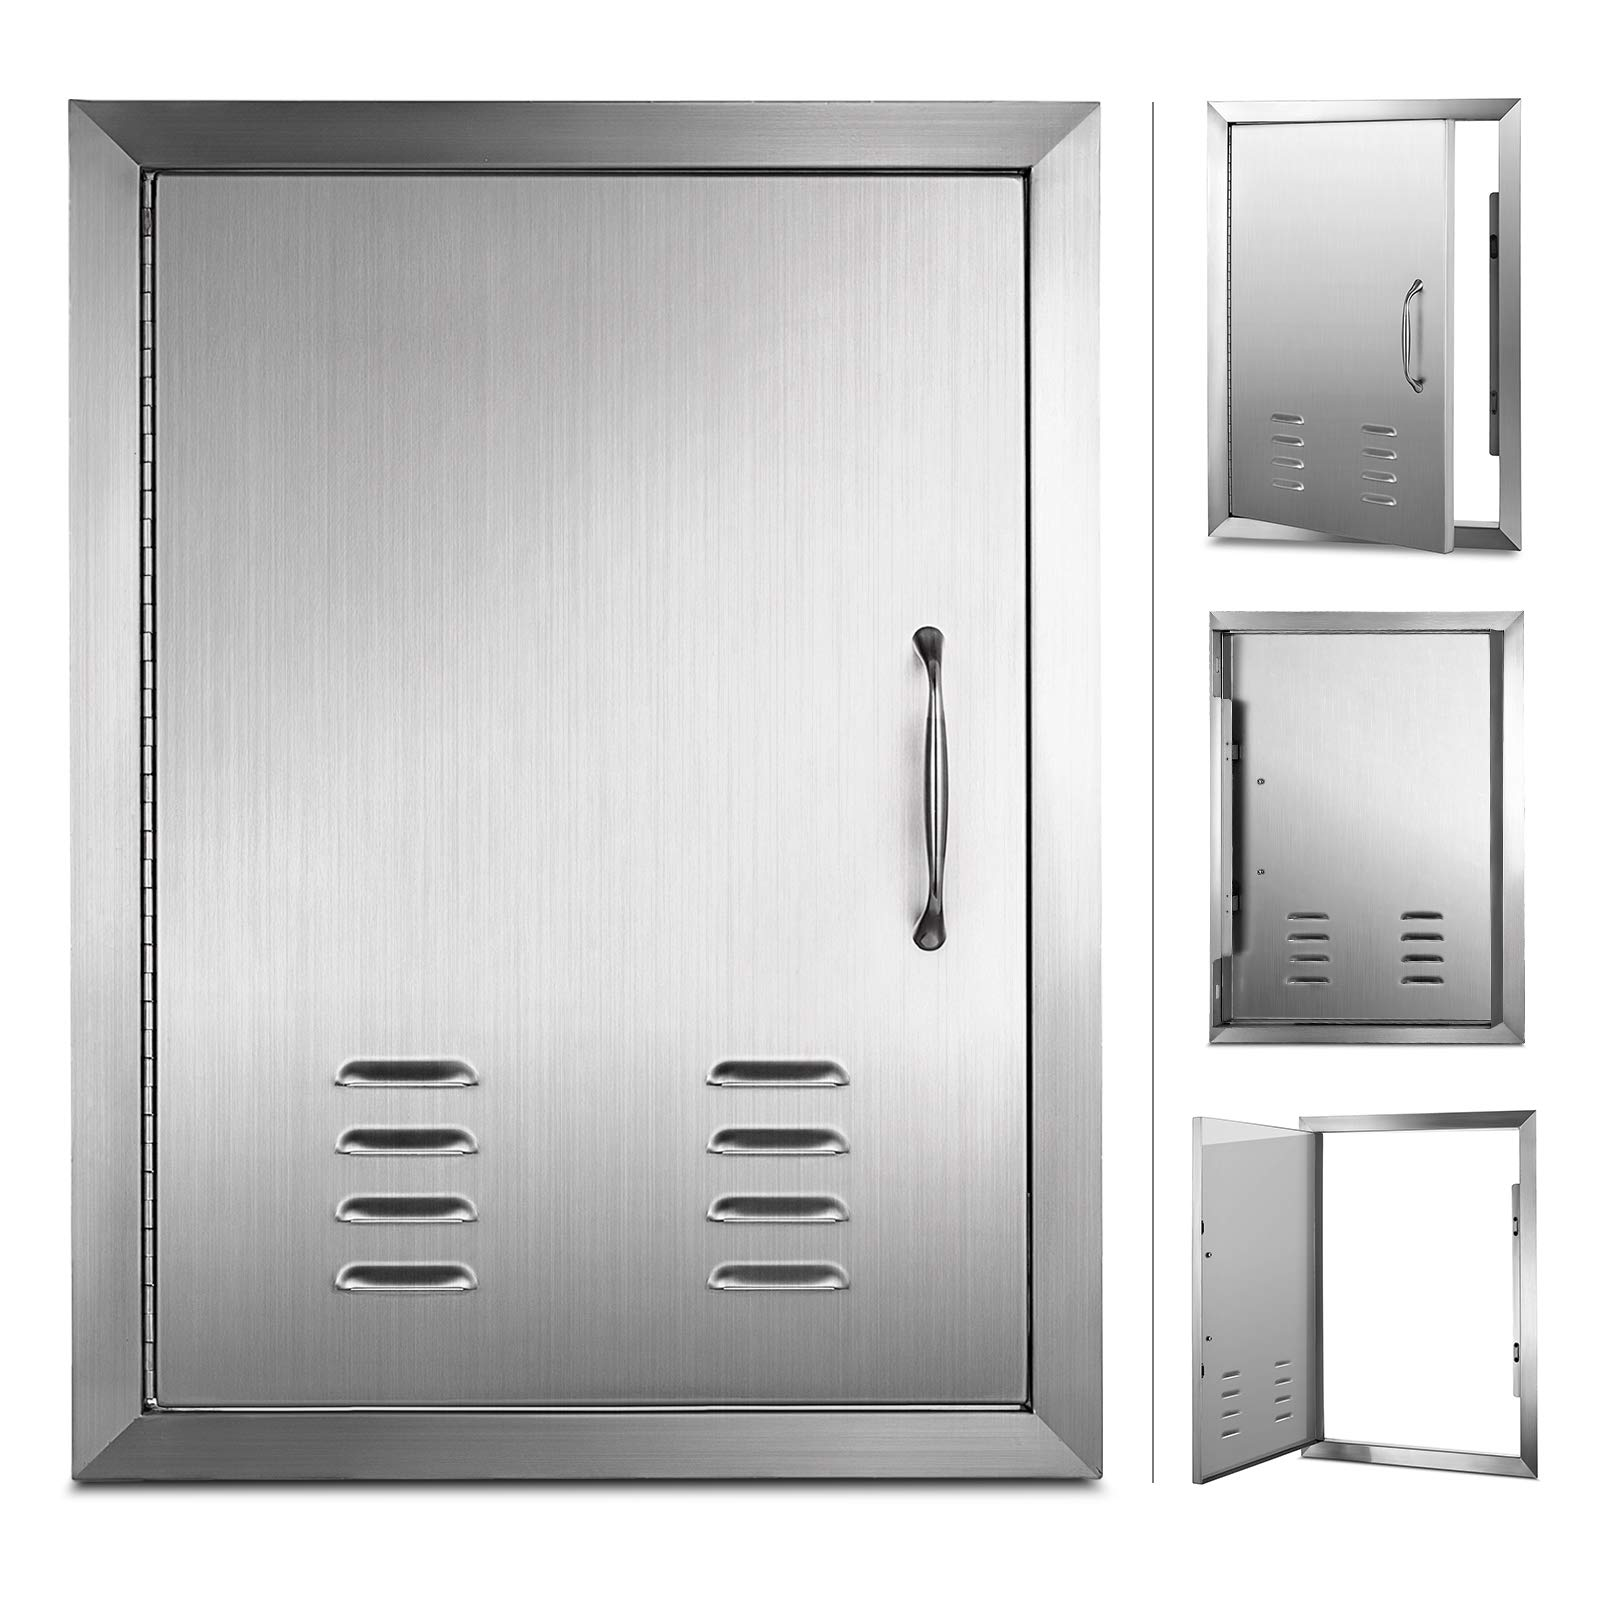 Mophorn Outdoor Kitchen Access Door 14''x 20'' Single Wall Construction Stainless Steel Flush Mount for BBQ Island, 14inch x 20inch, Vents